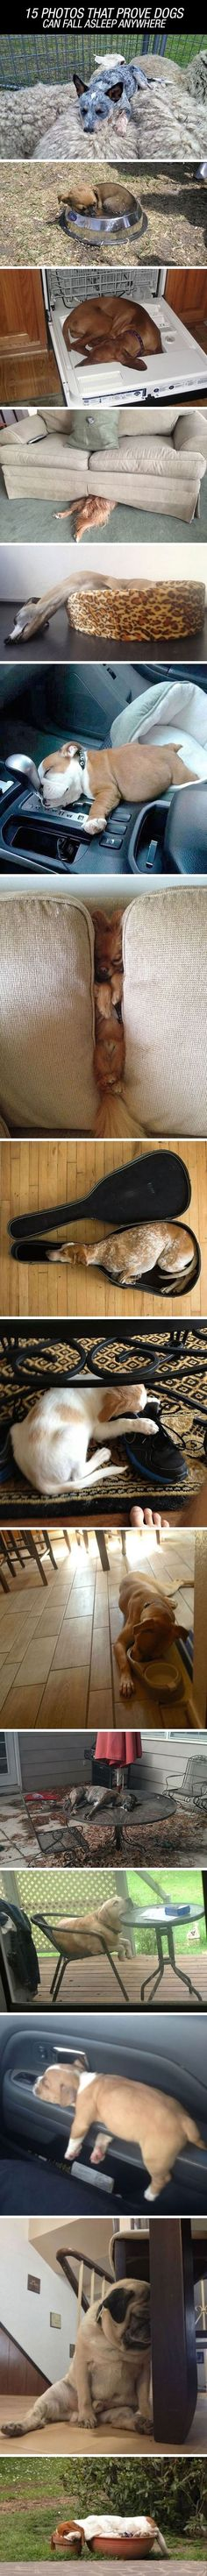 15 Photos That Prove Dogs Can Fall Asleep Anywhere Pictures, Photos, and Images for Facebook, Tumblr, Pinterest, and Twitter